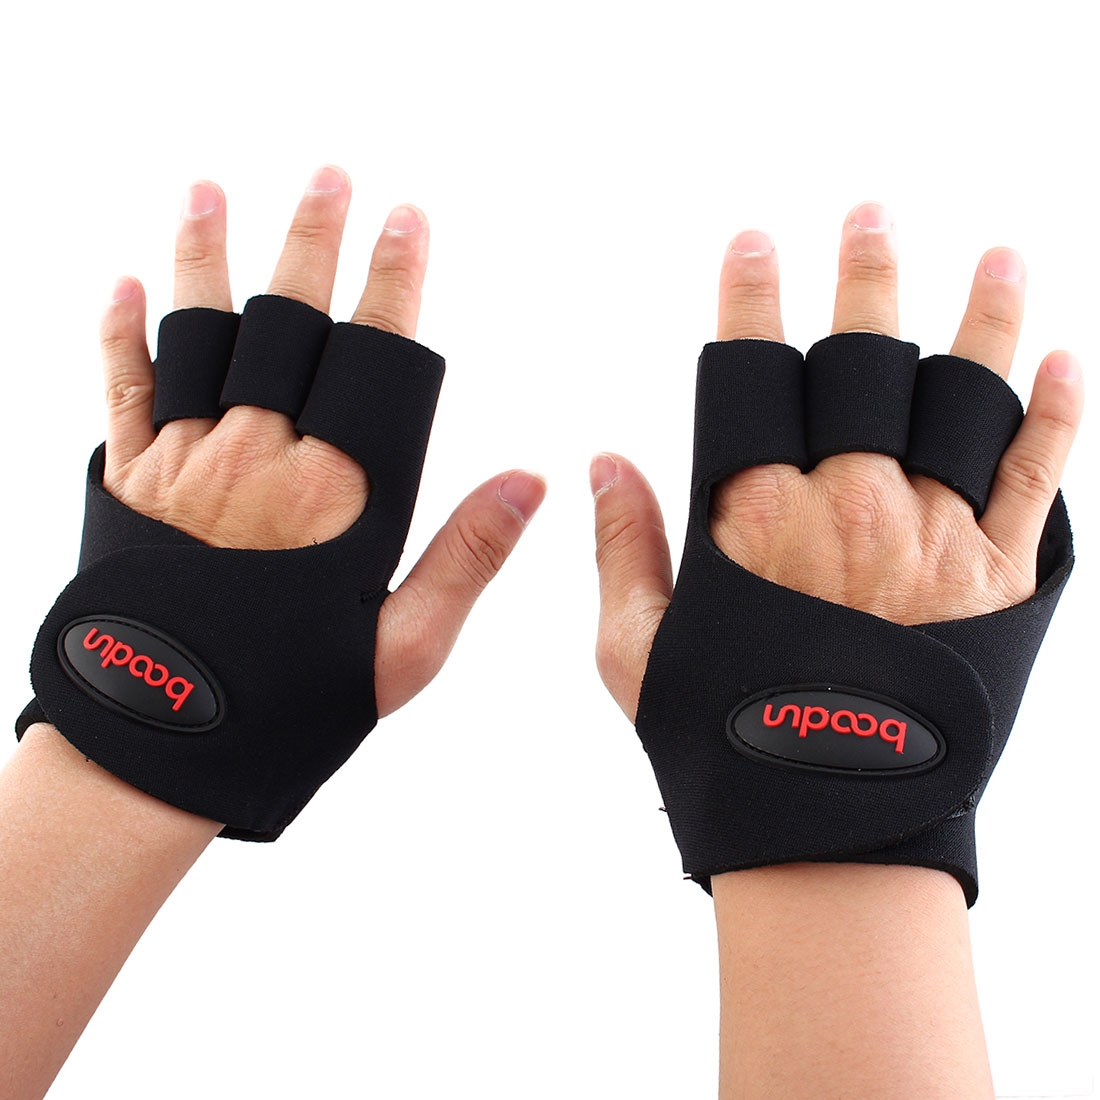 Boodun Authorized Outdoor Sports Cycling Gym Exercise Weight Lifting Non-slip Rubber Padding Training Gloves Size L Pair